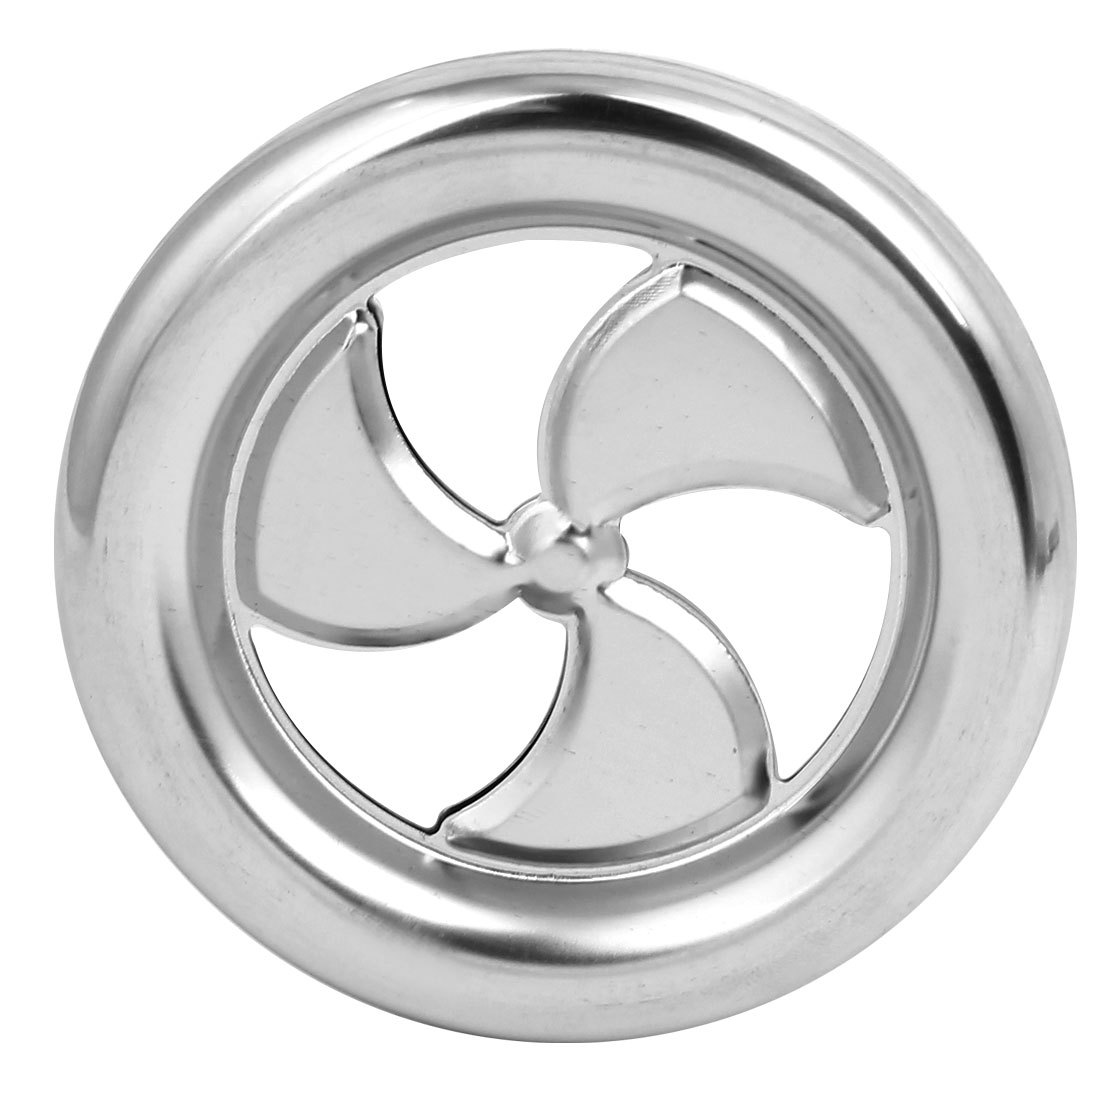 4-inch 304 Stainless Steel Rail Fence Round Decor Fitting